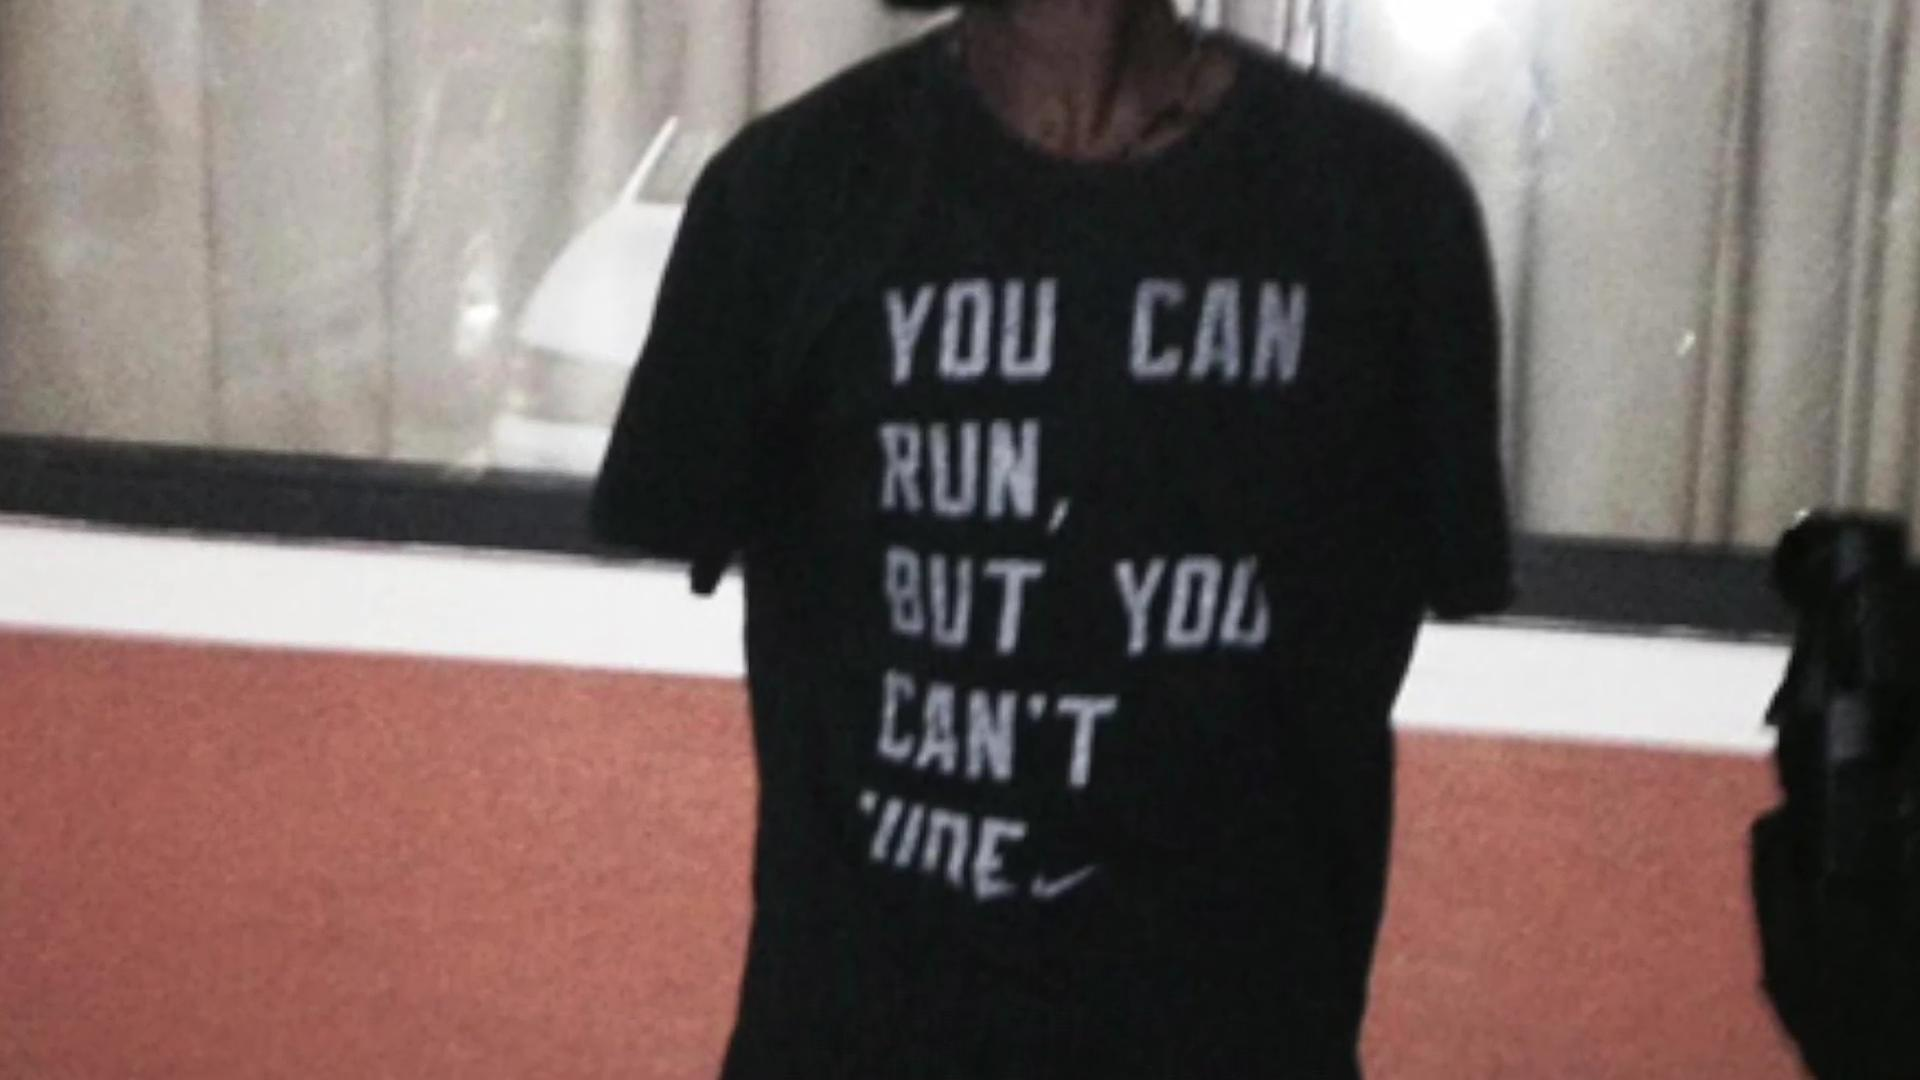 """Fugitive arrested wearing """"You can run, but you can't hide"""" shirt"""